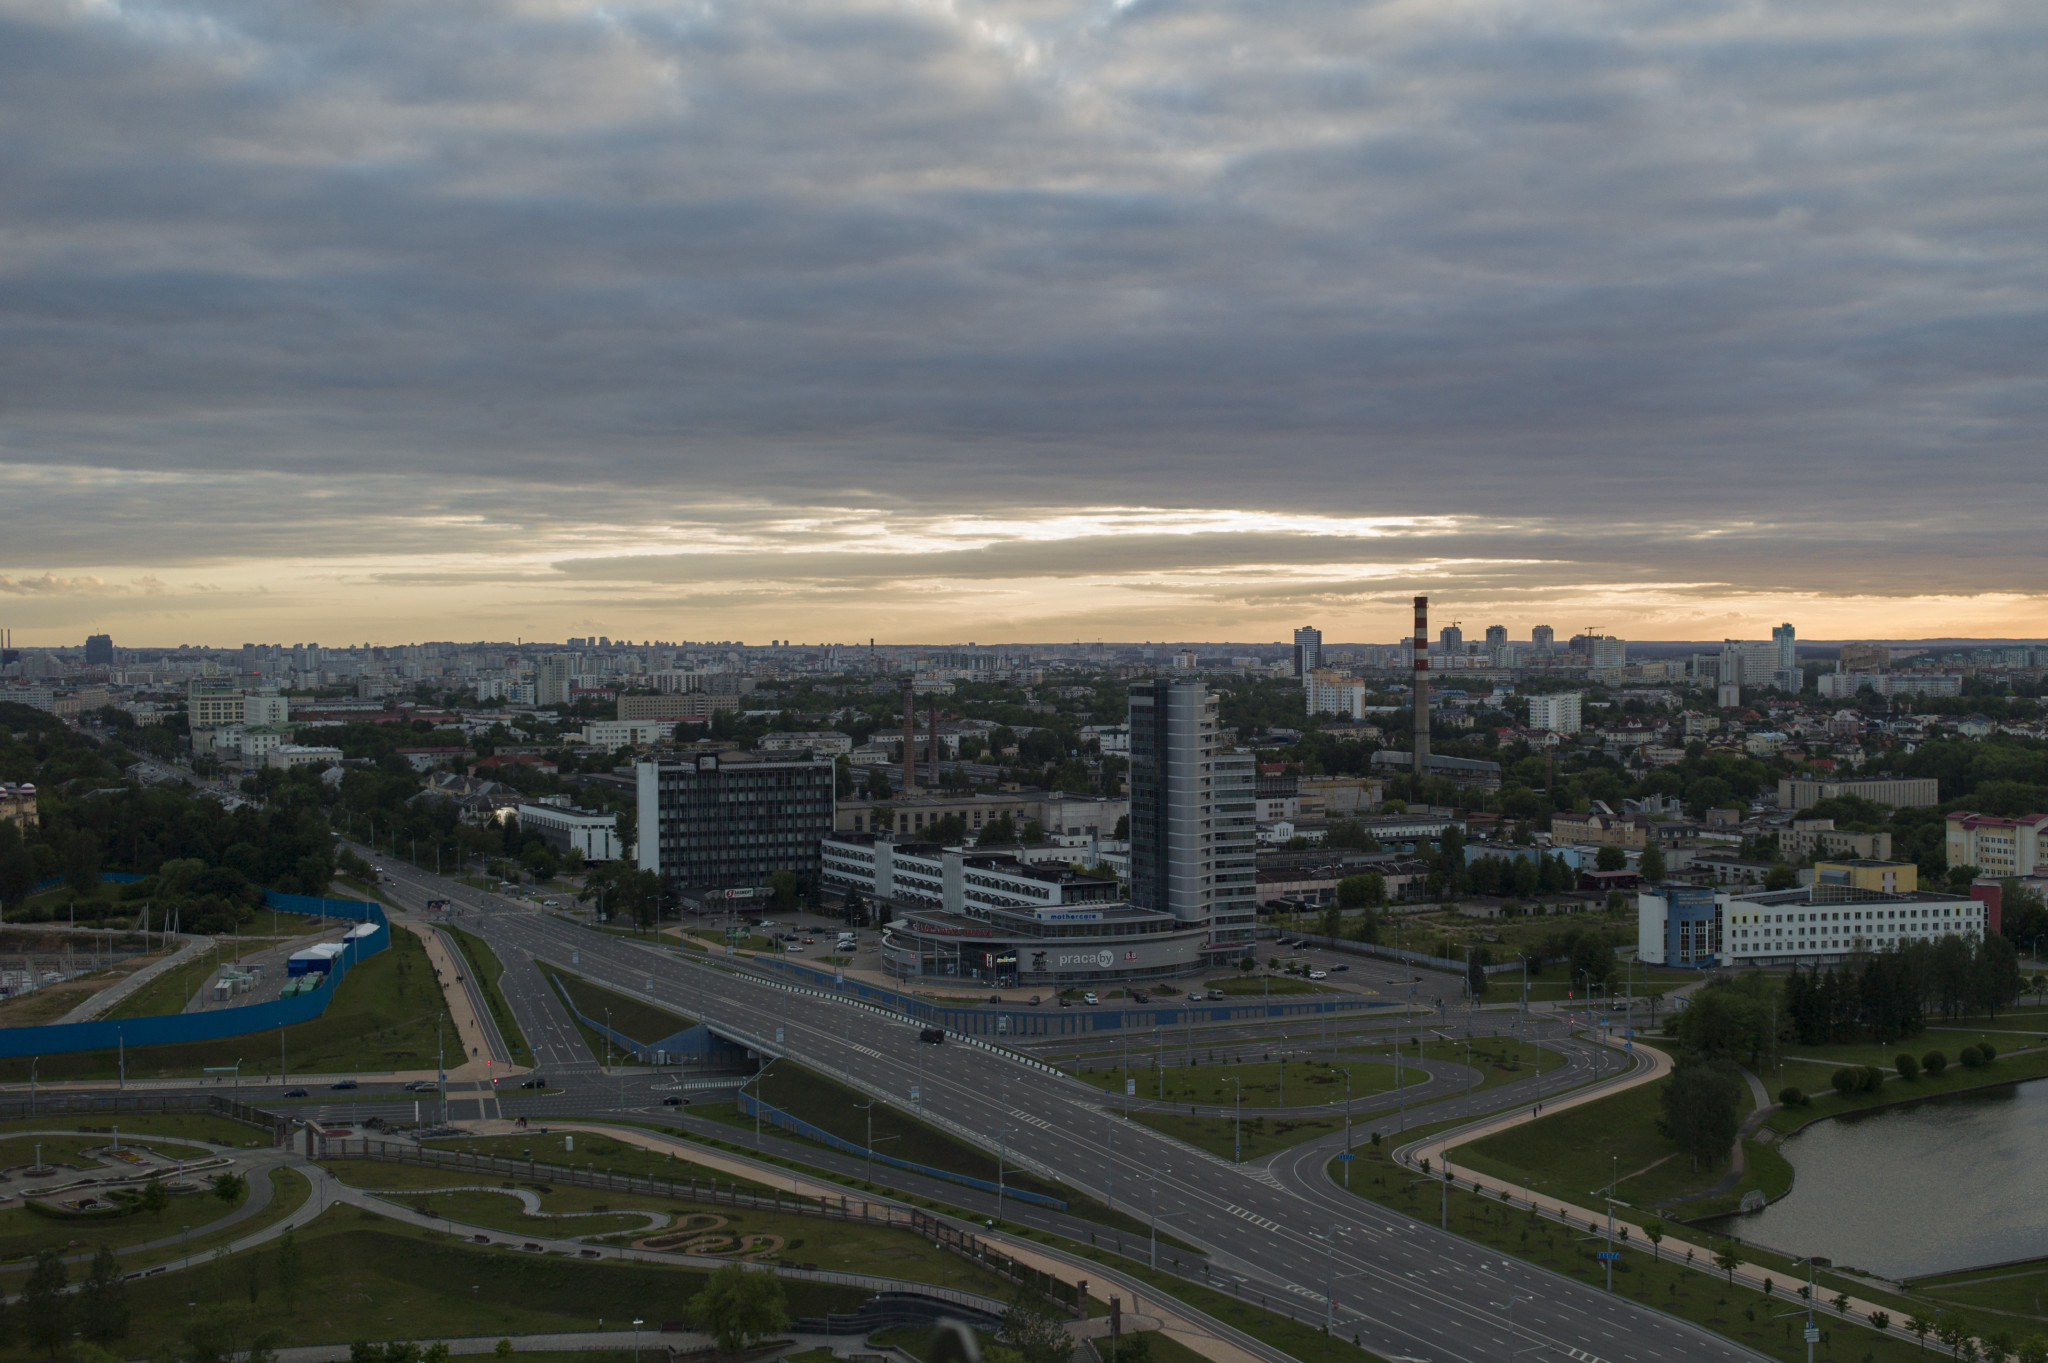 Minsk will host the second edition of the European Games ©Minsk 2019